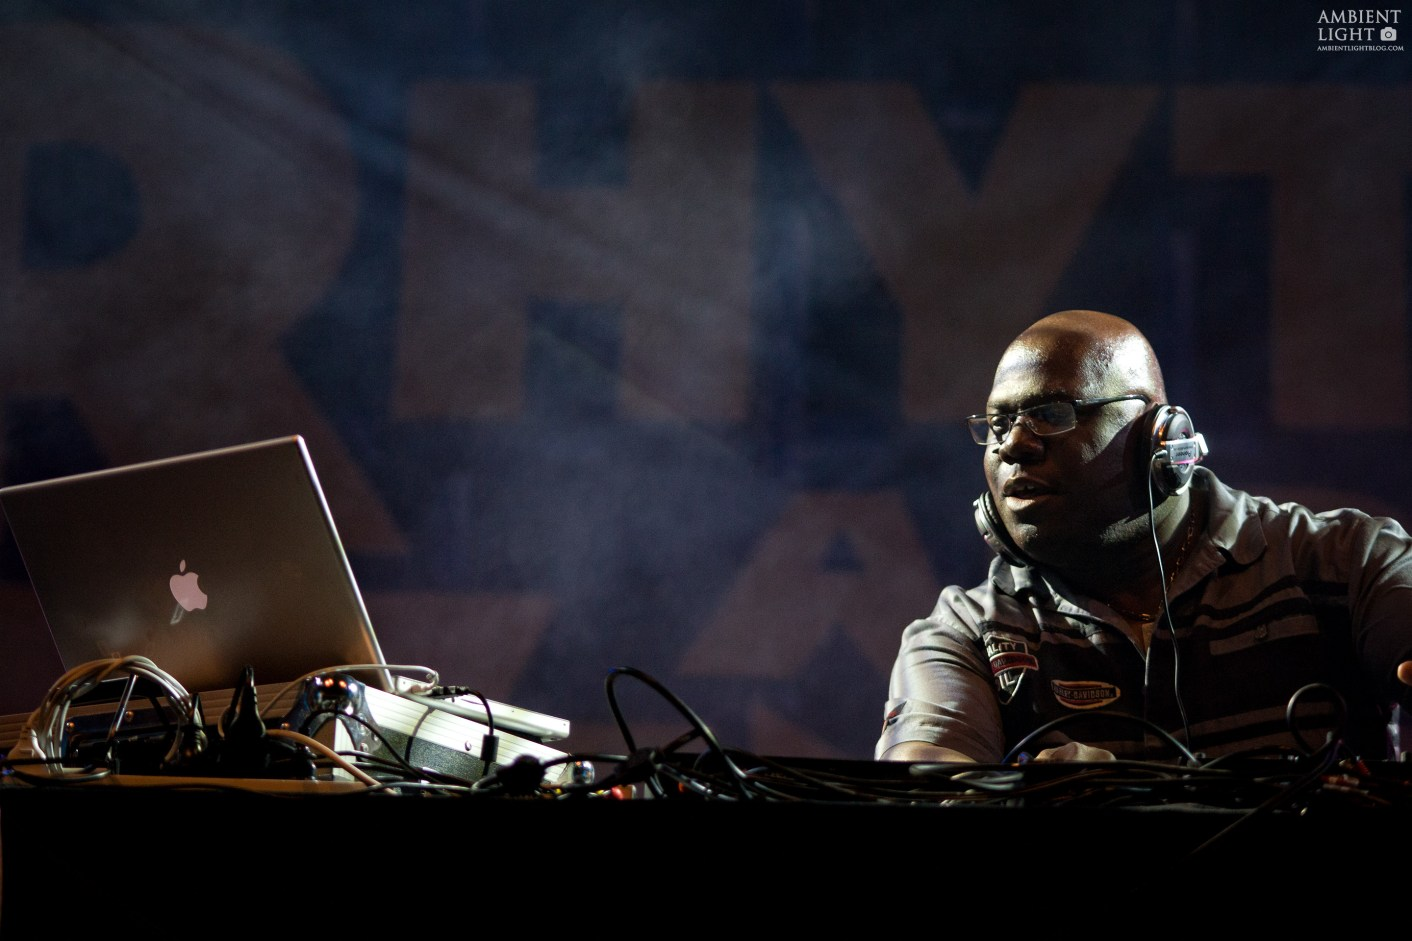 Carl Cox performing live in Gisborne, 2008. Photo by New Zealand concert photographer Doug Peters.